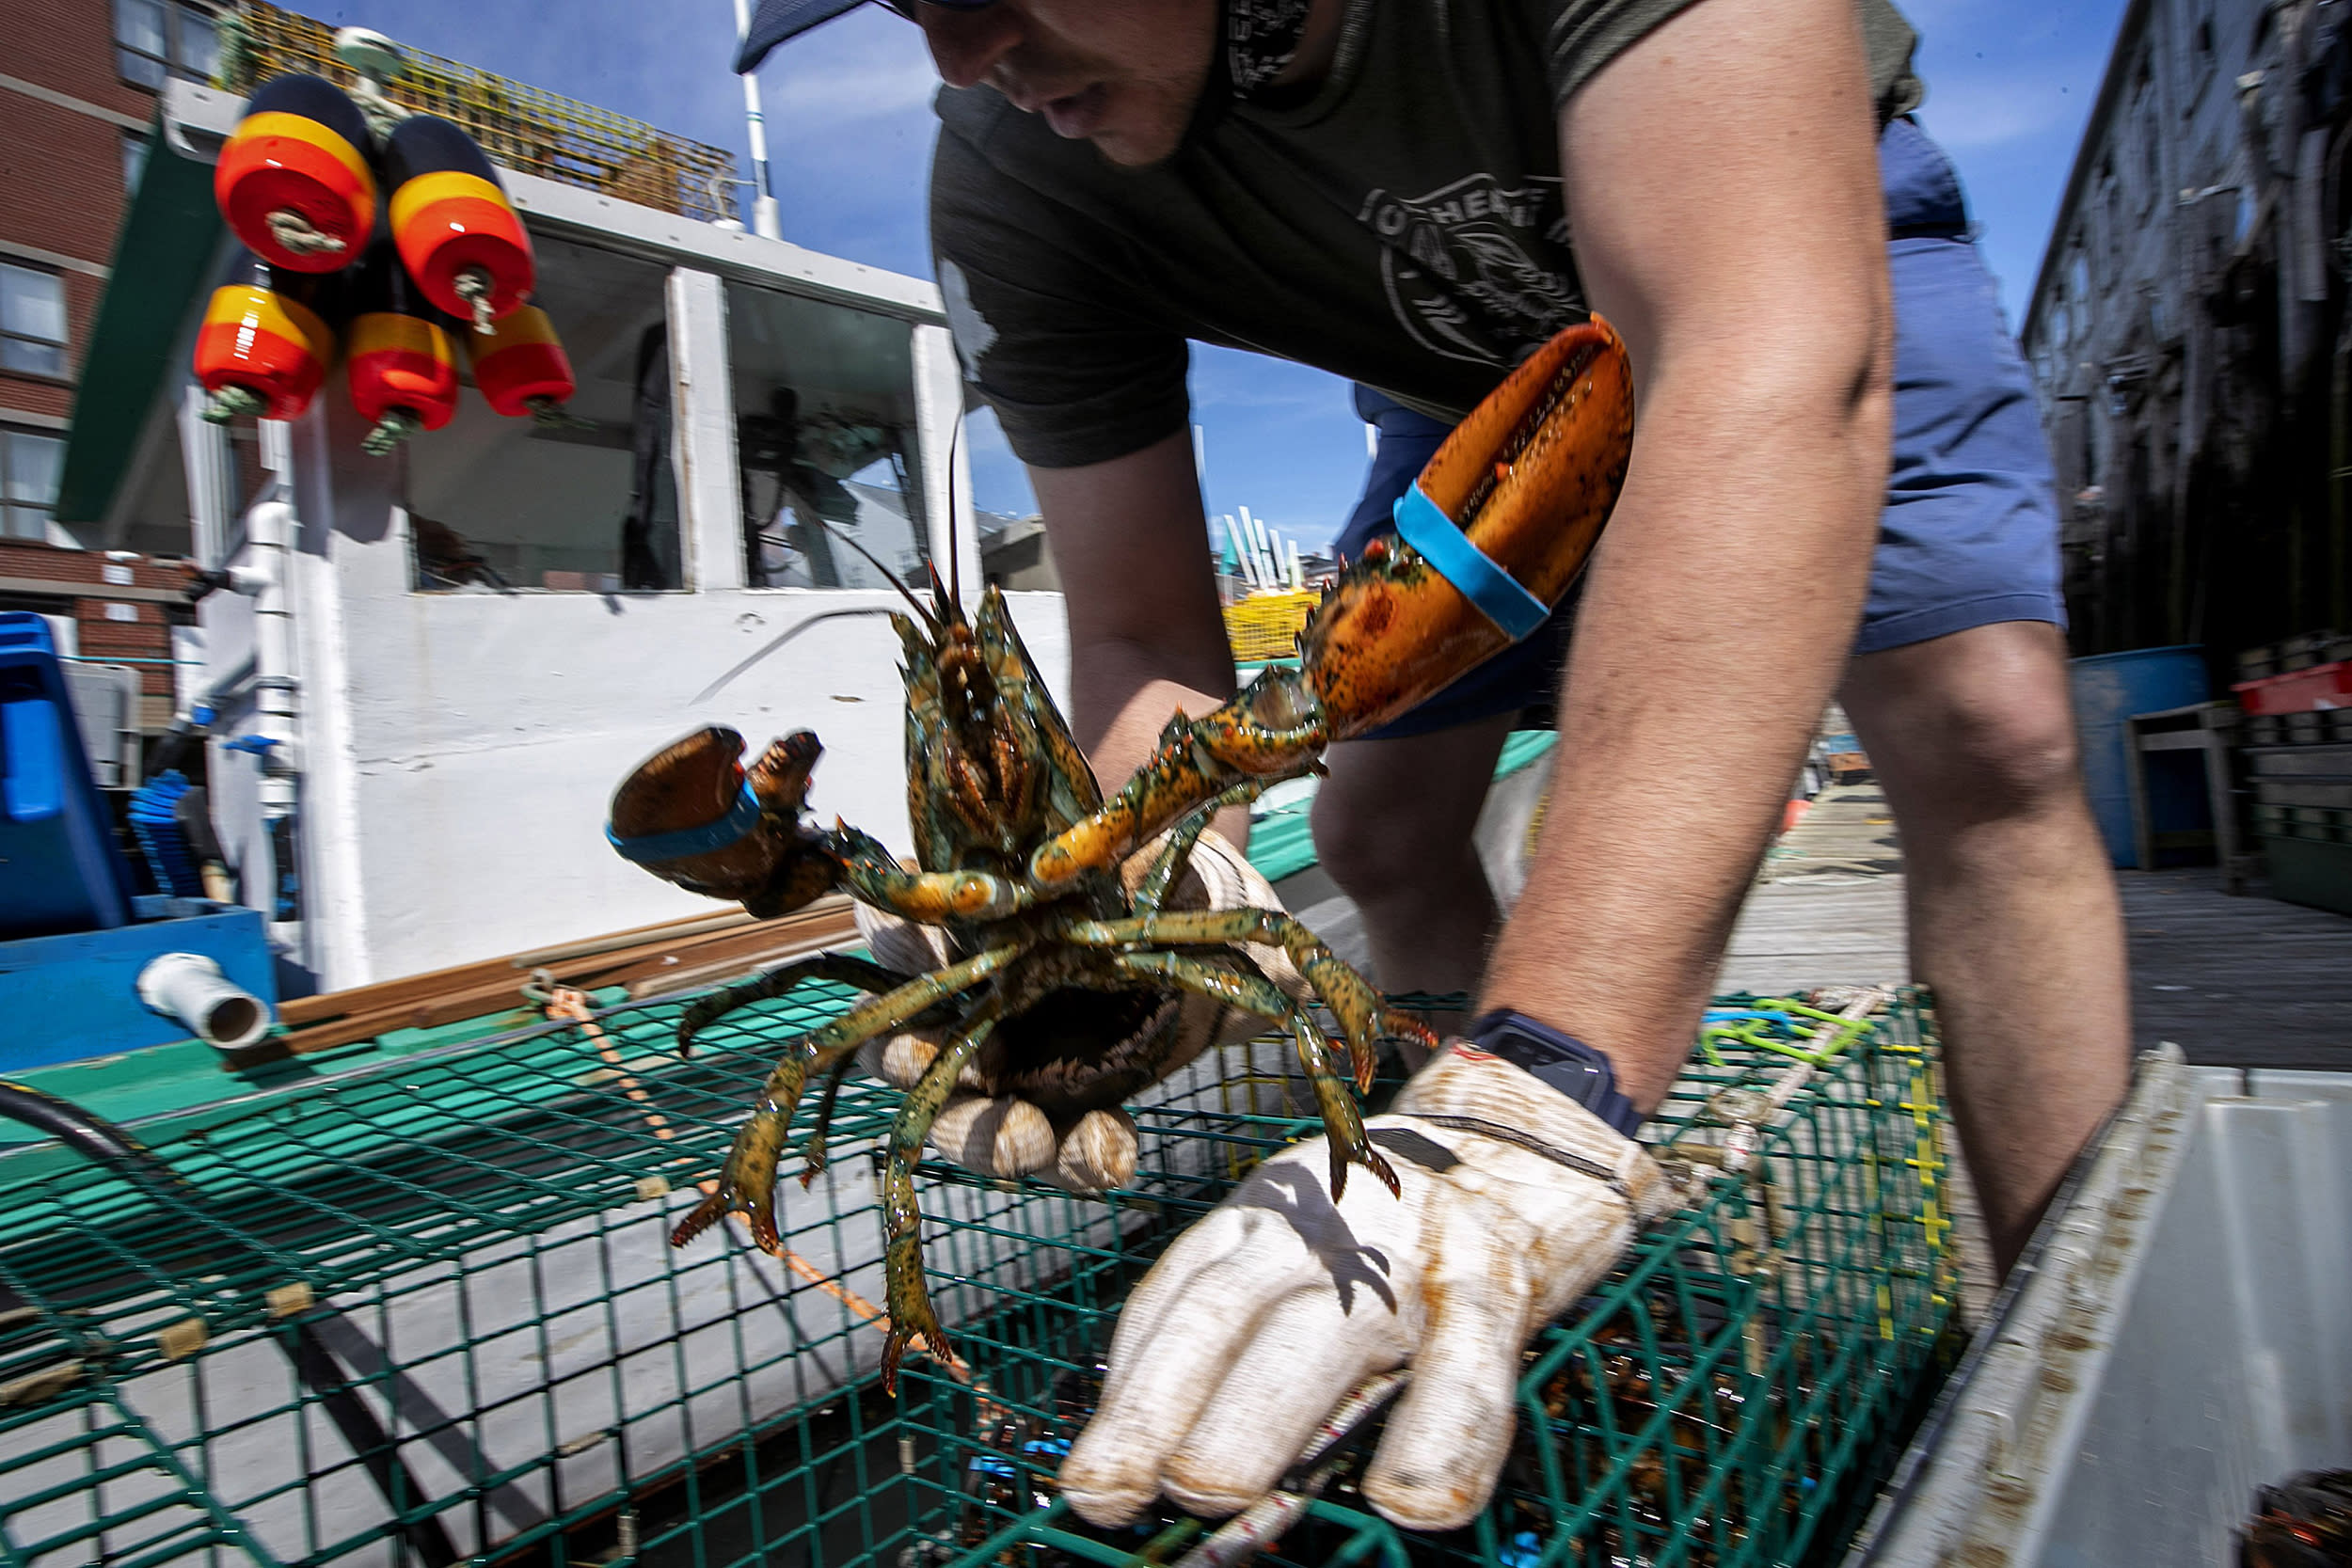 Fact check: Trump's trade war pinched Maine's lobster industry. He falsely blames Obama.